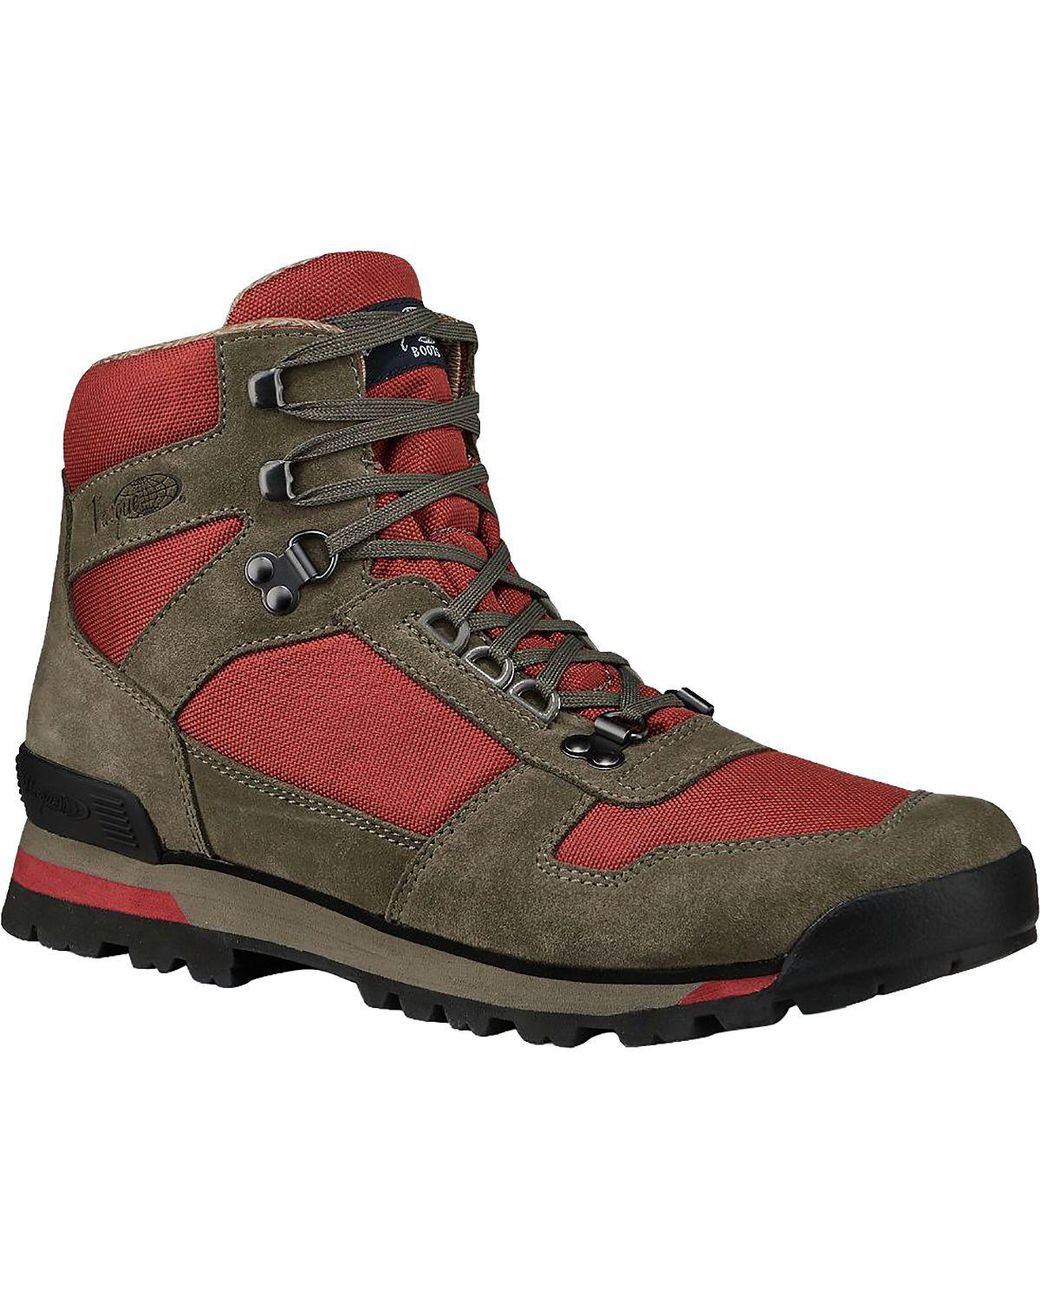 Vasque Suede Clarion \'88 Hiking Boot for Men - Lyst